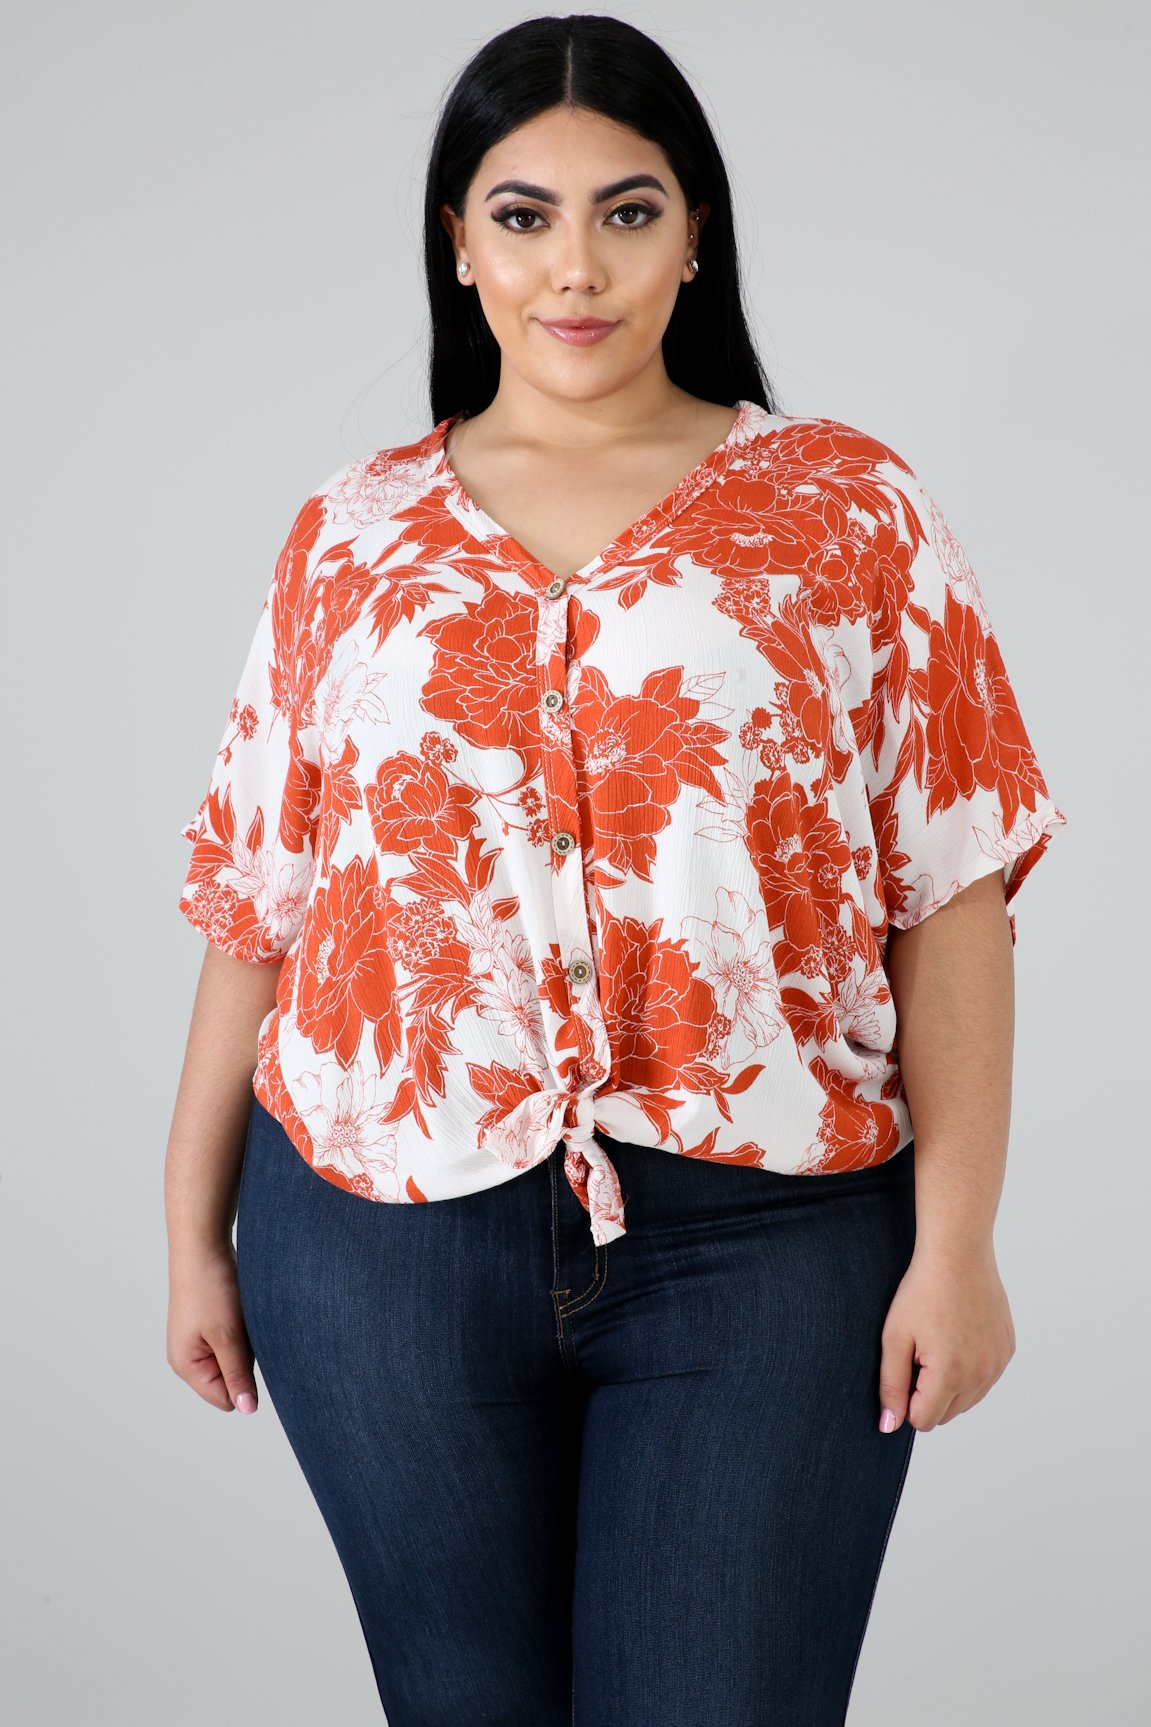 Blossom Top | GitiOnline